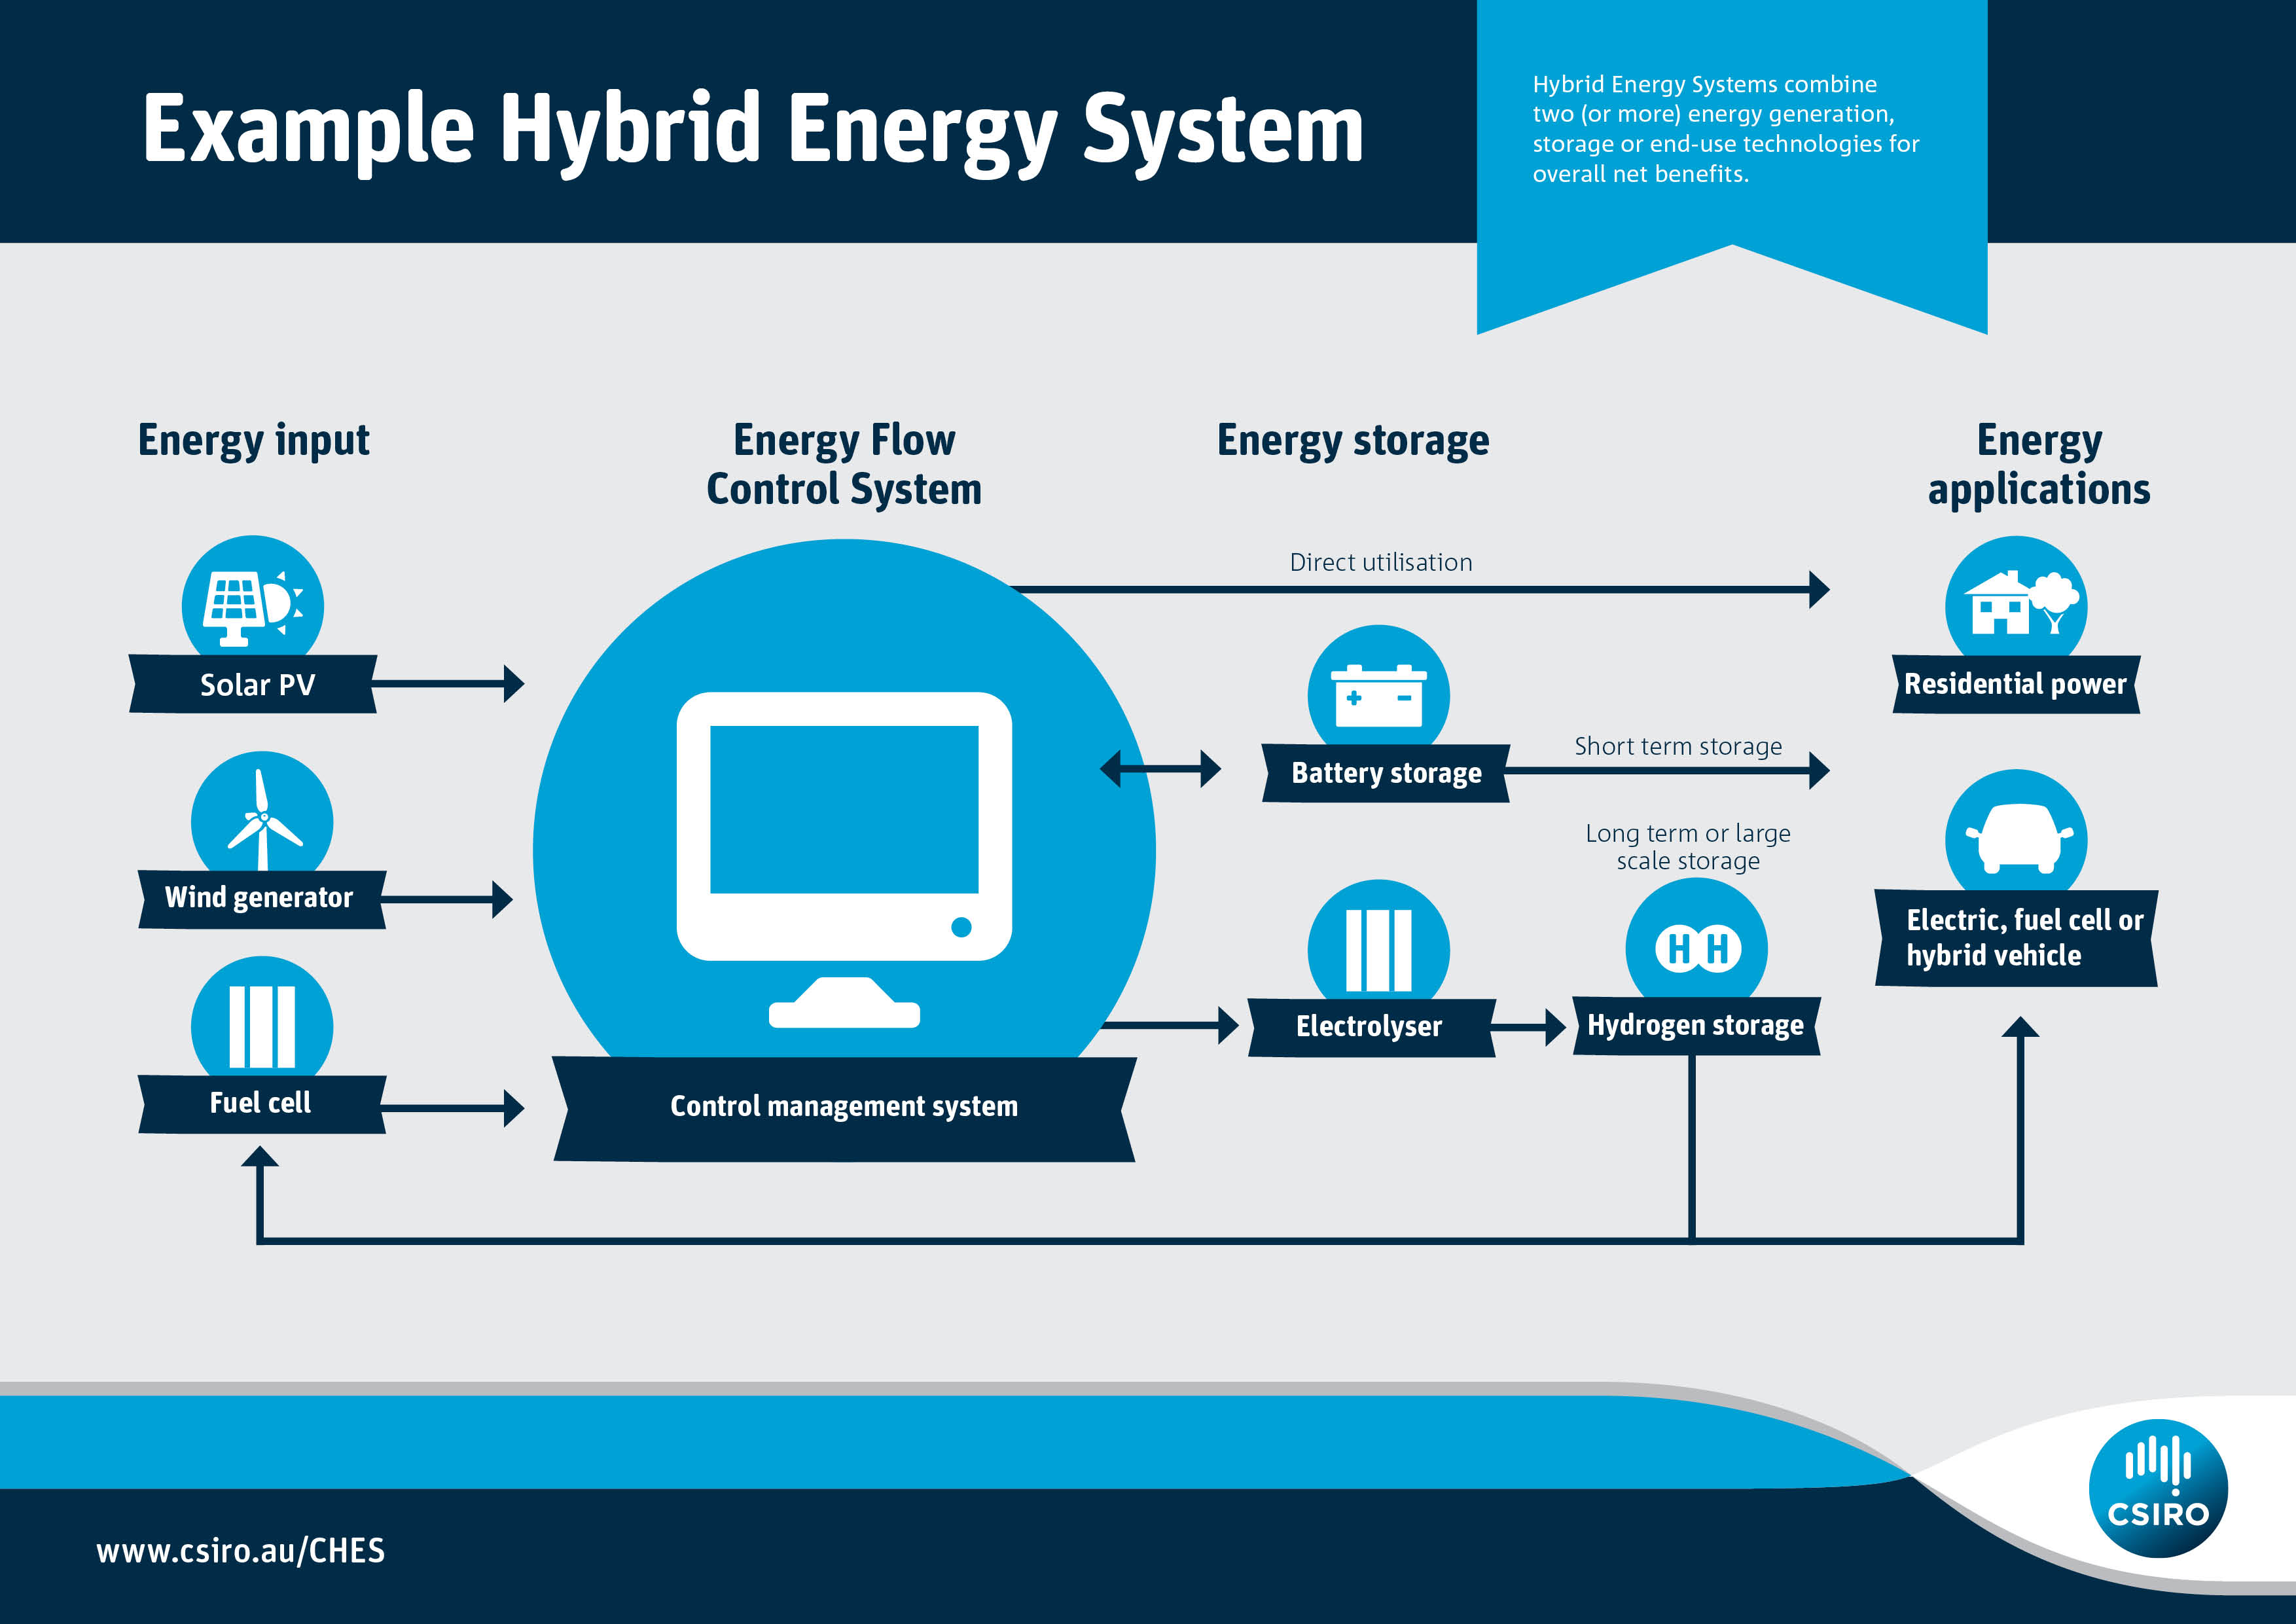 Infographic of energy flow and storage example in the Hybrid Energy System.